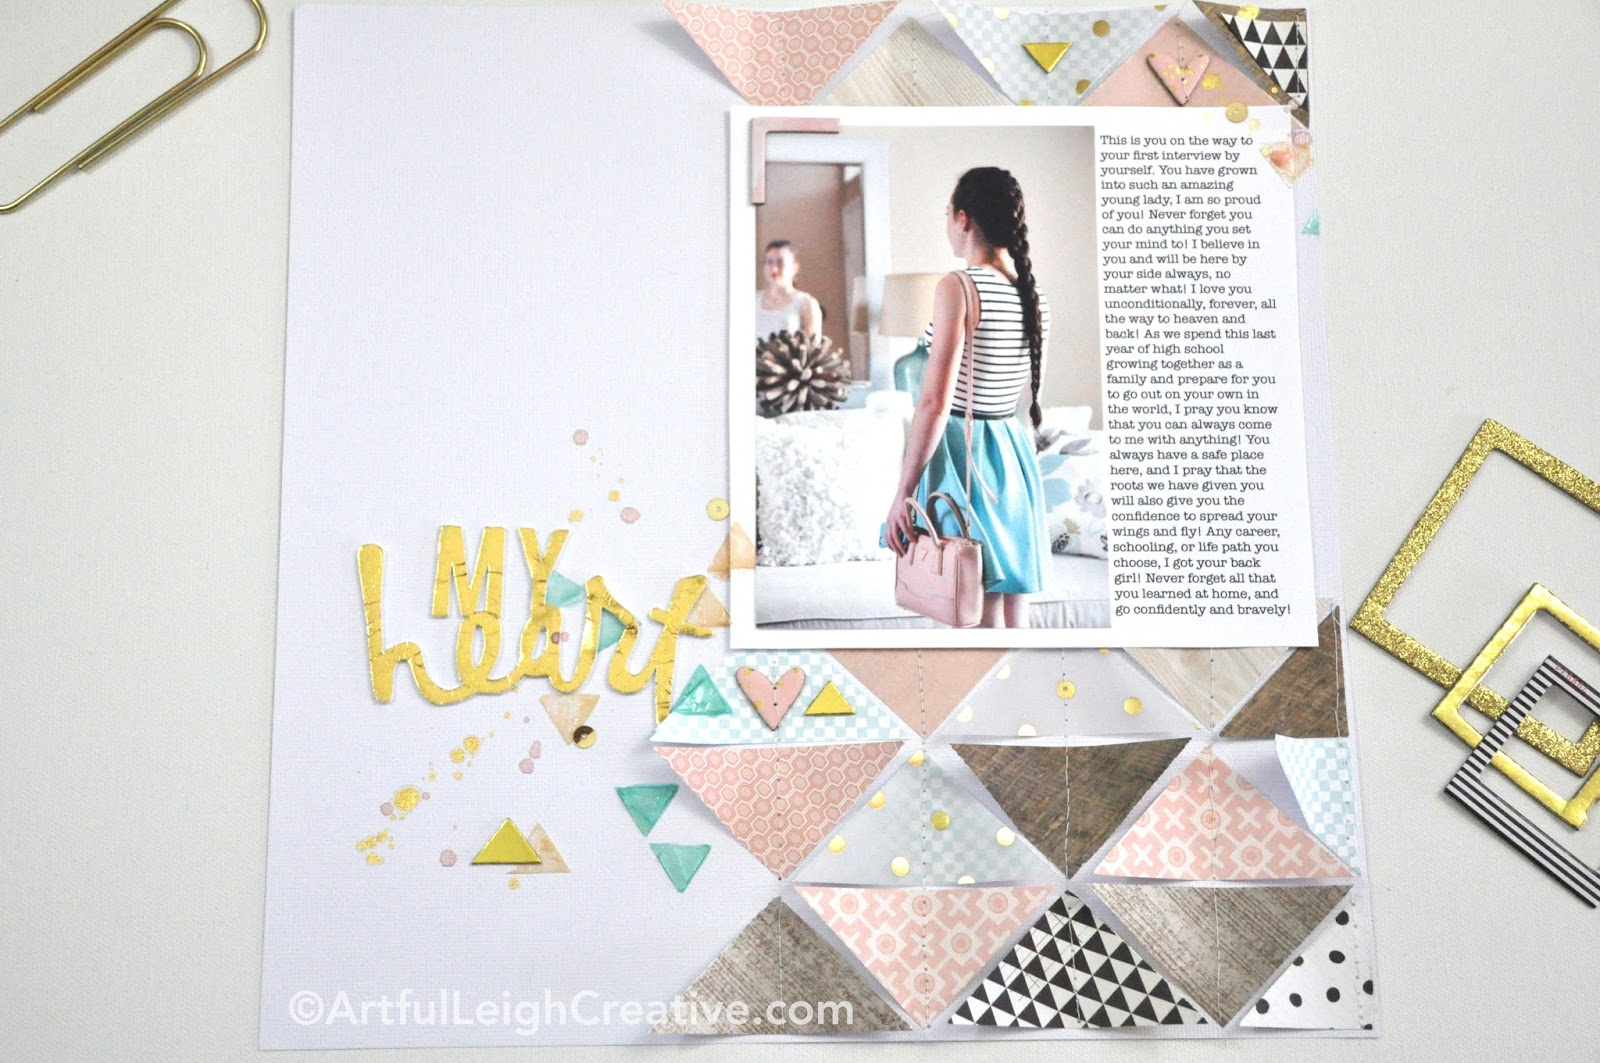 How to design scrapbook using colored paper - All Products From American Crafts Except For Liquitex Heavy Gloss Gel White Card Stock 71259 Diy Shop Gold Dot Vellum 369025 Patterned Paper Crate